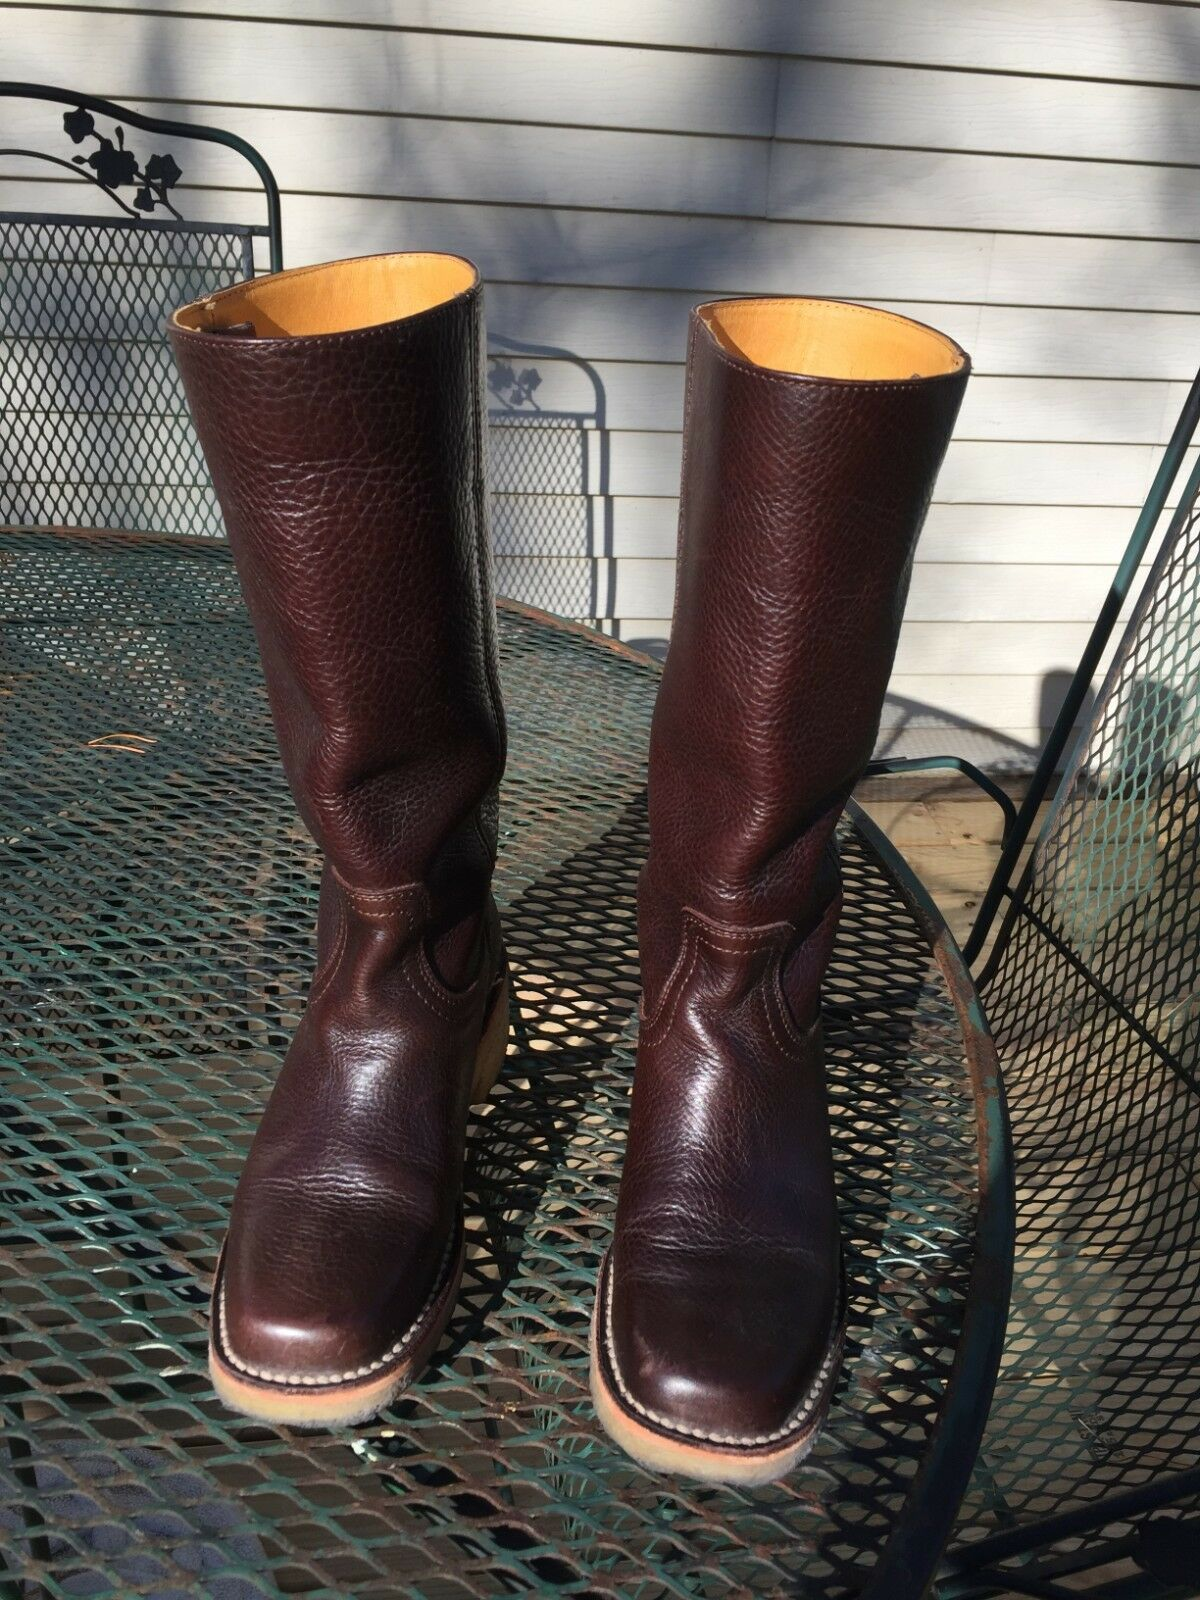 Frye Campus Tall Leather Boots w leather lining, size 5-1 2 B